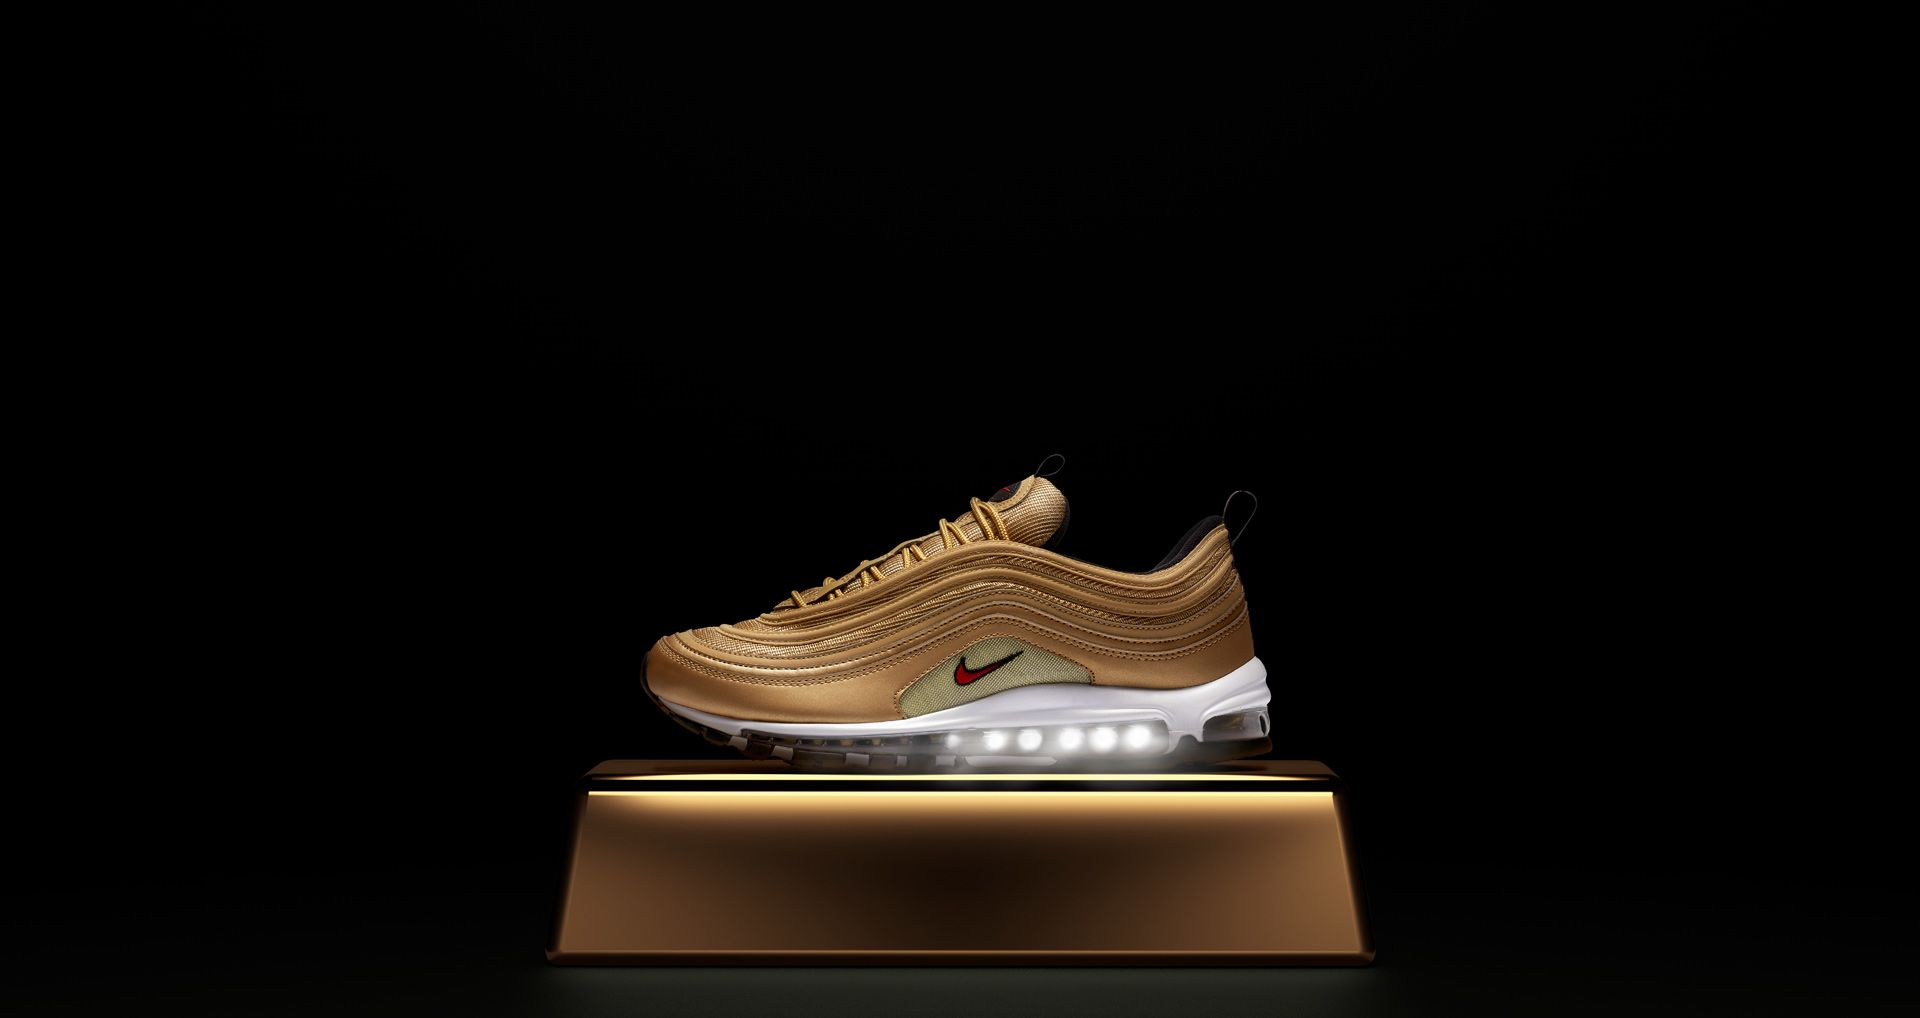 sports shoes 401cd d6b2e Nike Air Max 97 OG QS 'Metallic Gold' Release Date. Nike⁠+ SNKRS